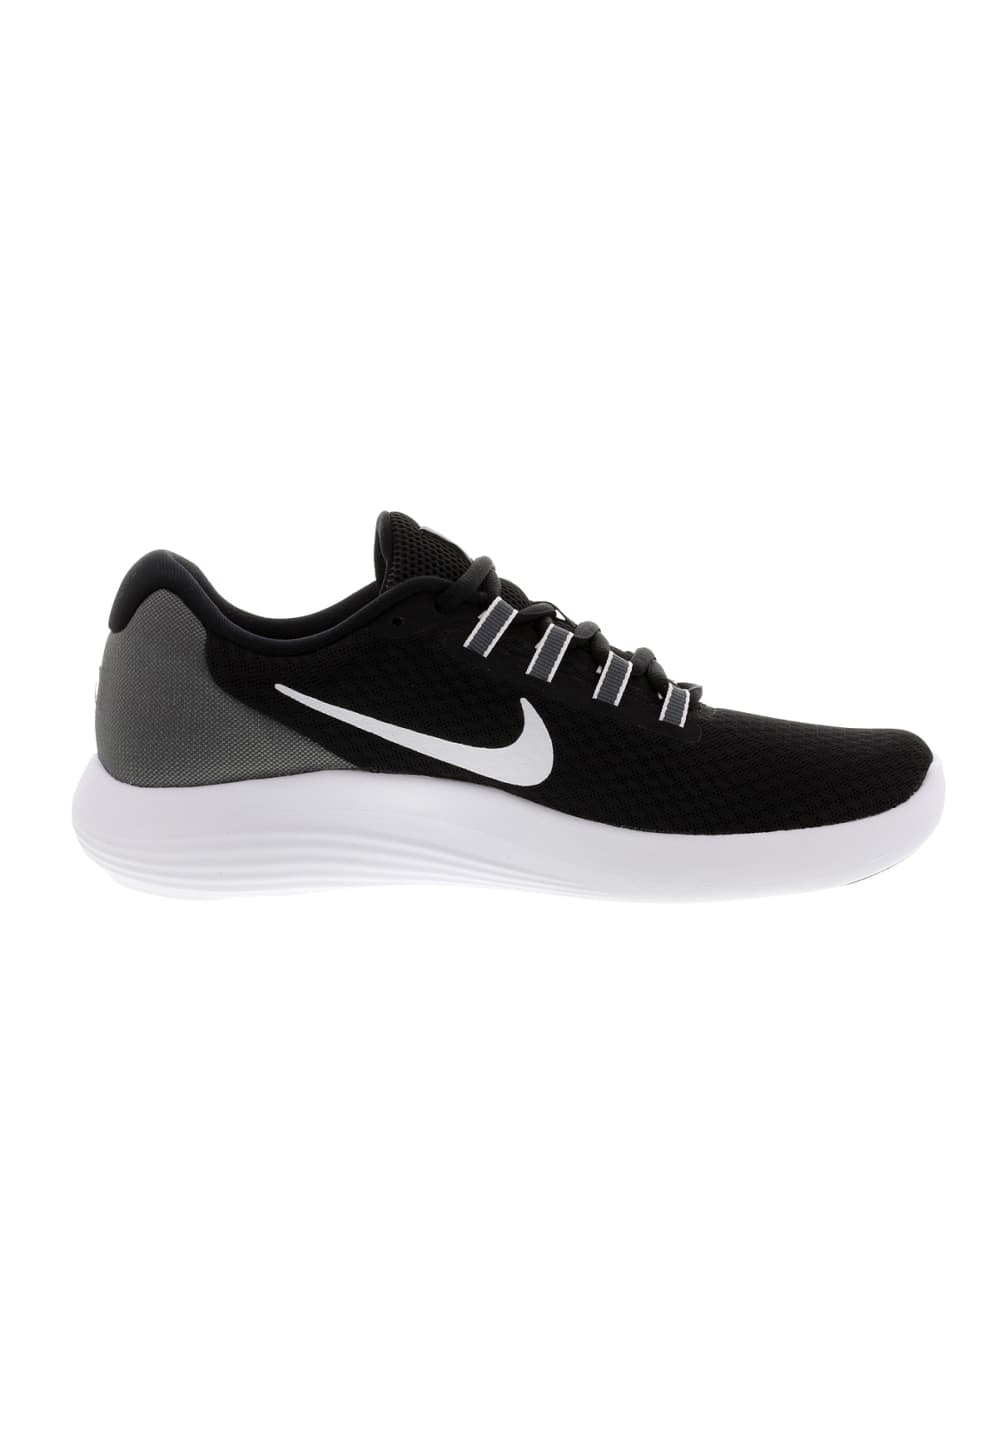 Nike Femme Lunarconverge Running Pour Chaussures Noir bf6yg7